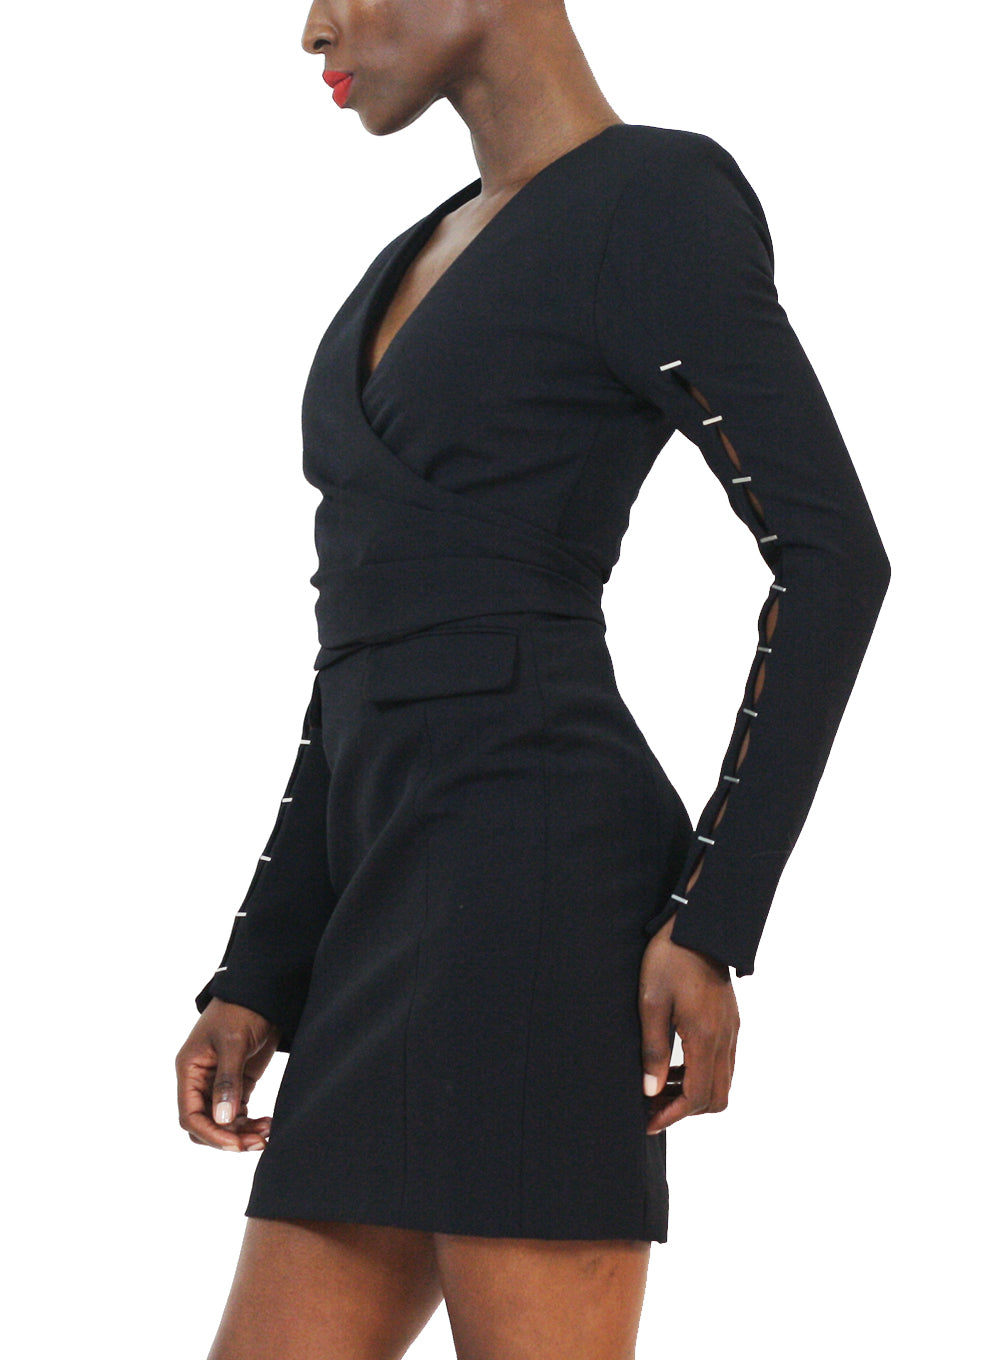 JONATHAN SIMKHAI | Bold-Shoulder Stretch Wrap Dress in Black